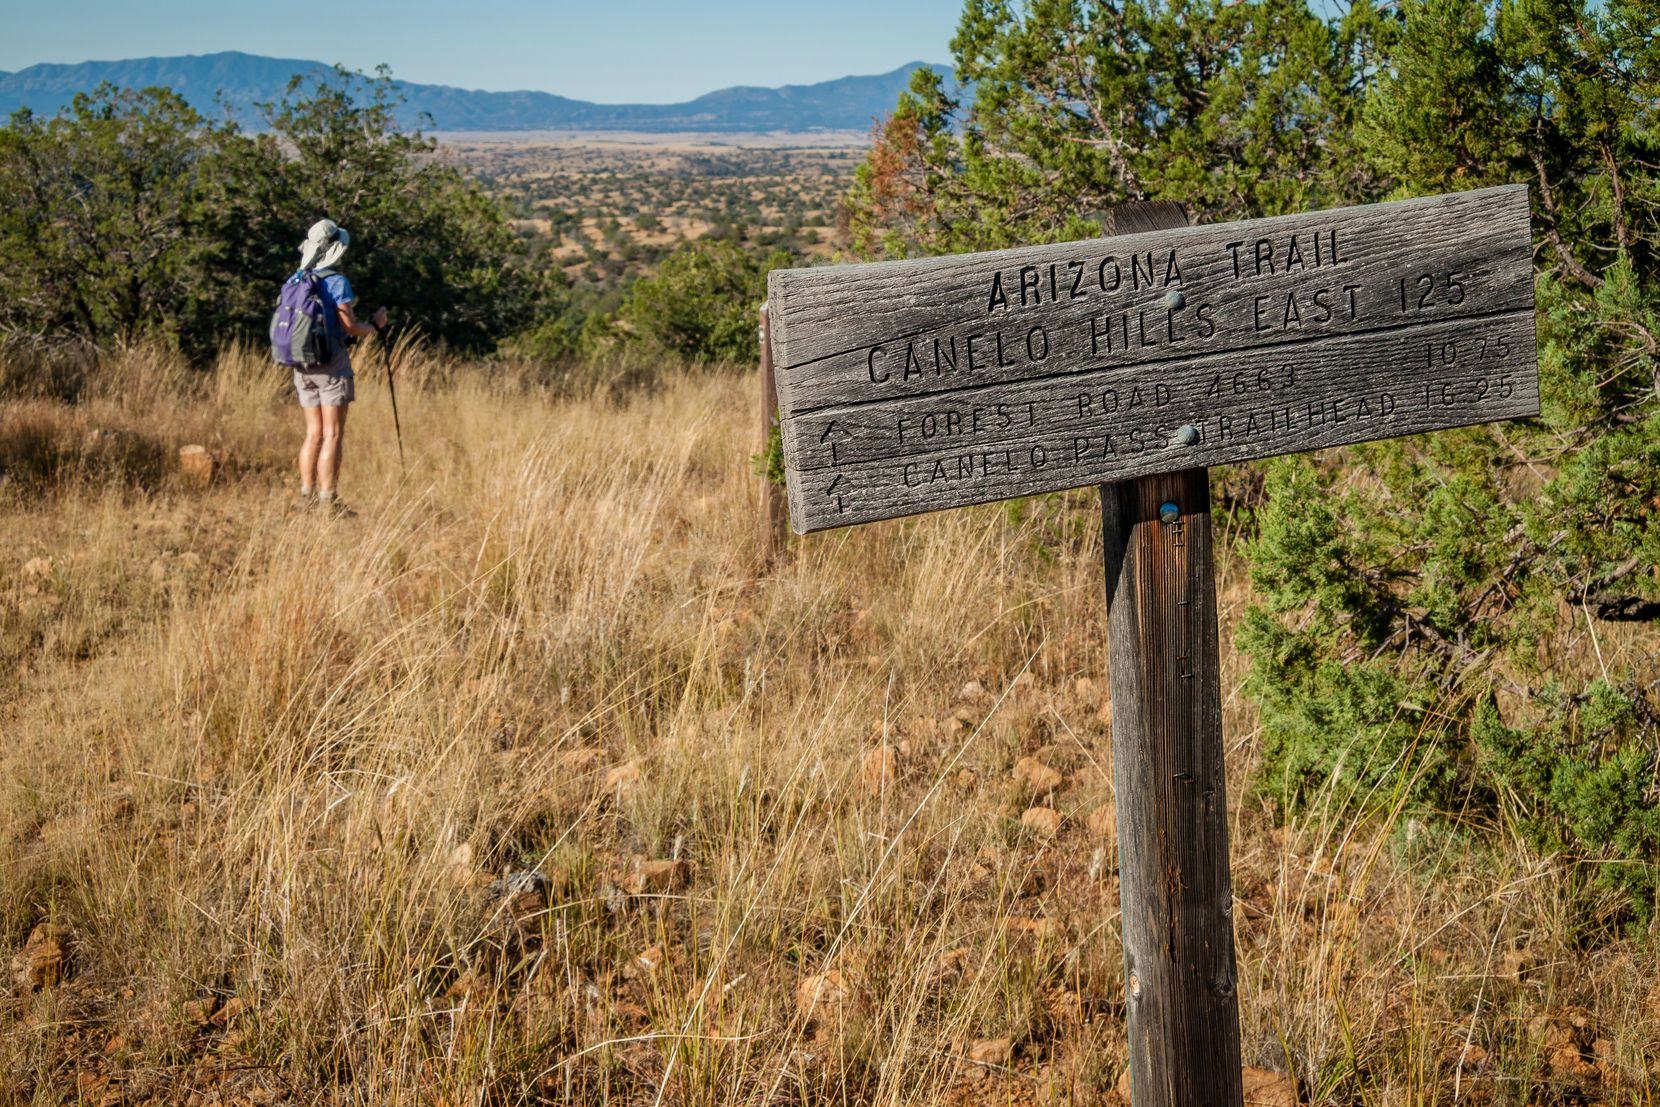 The Arizona National Scenic Trail, or AZT, runs from the state's Mexican border to Utah.